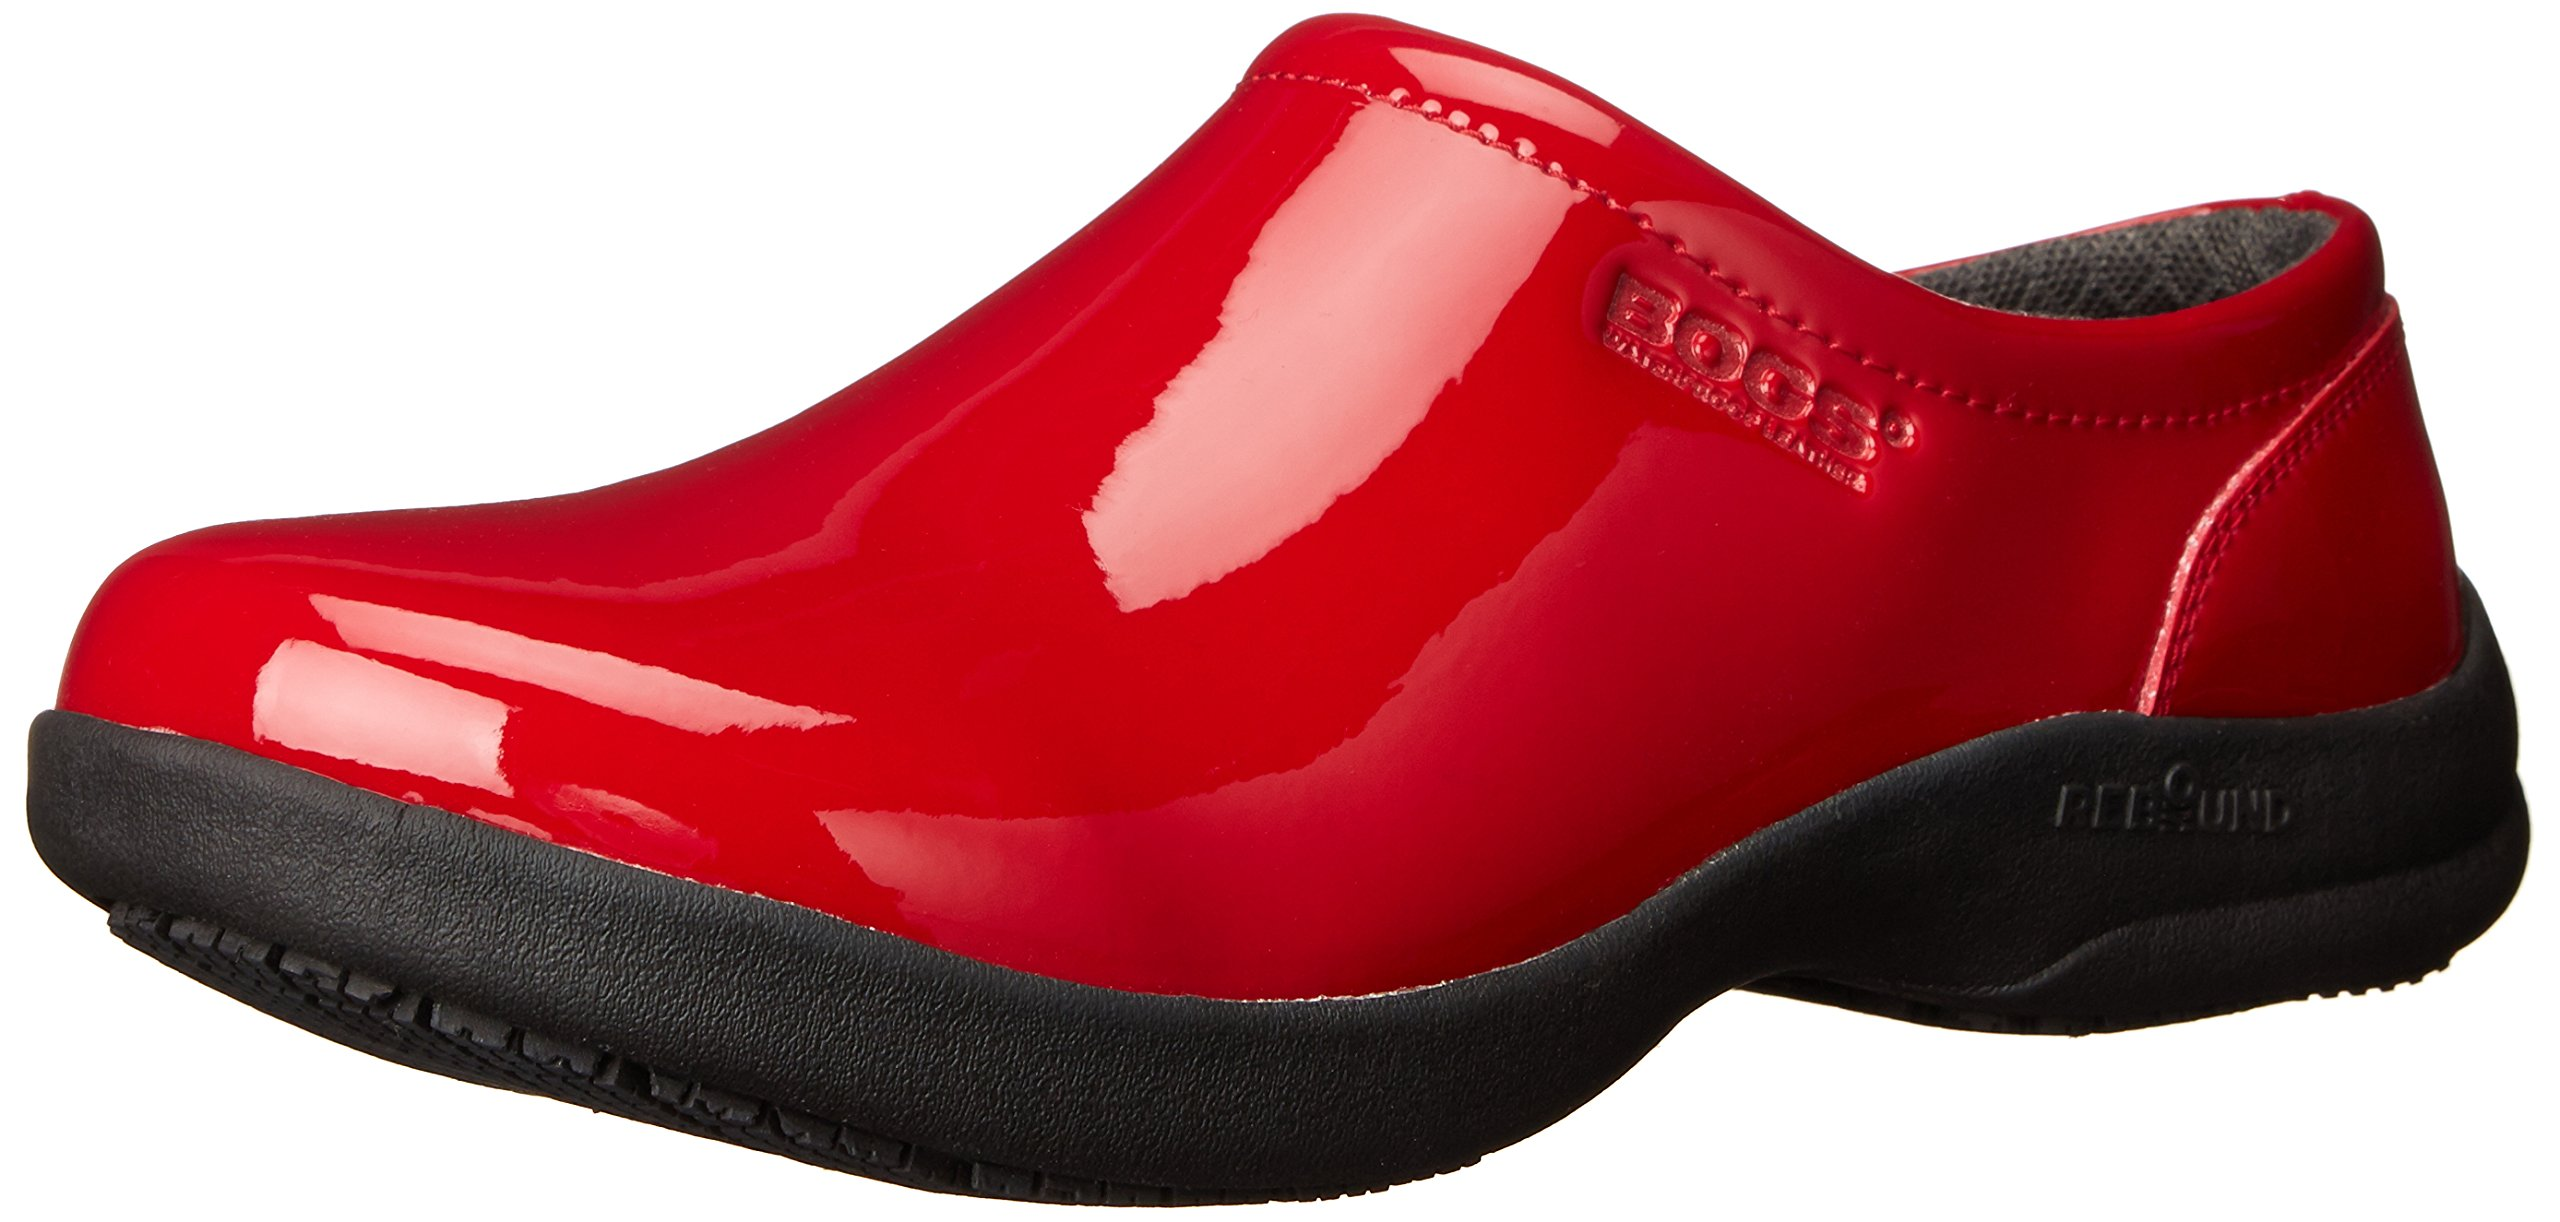 Bogs Women's Ramsey Patent Leather Slip Resistant Work Shoe, Red, 8 M US by Bogs